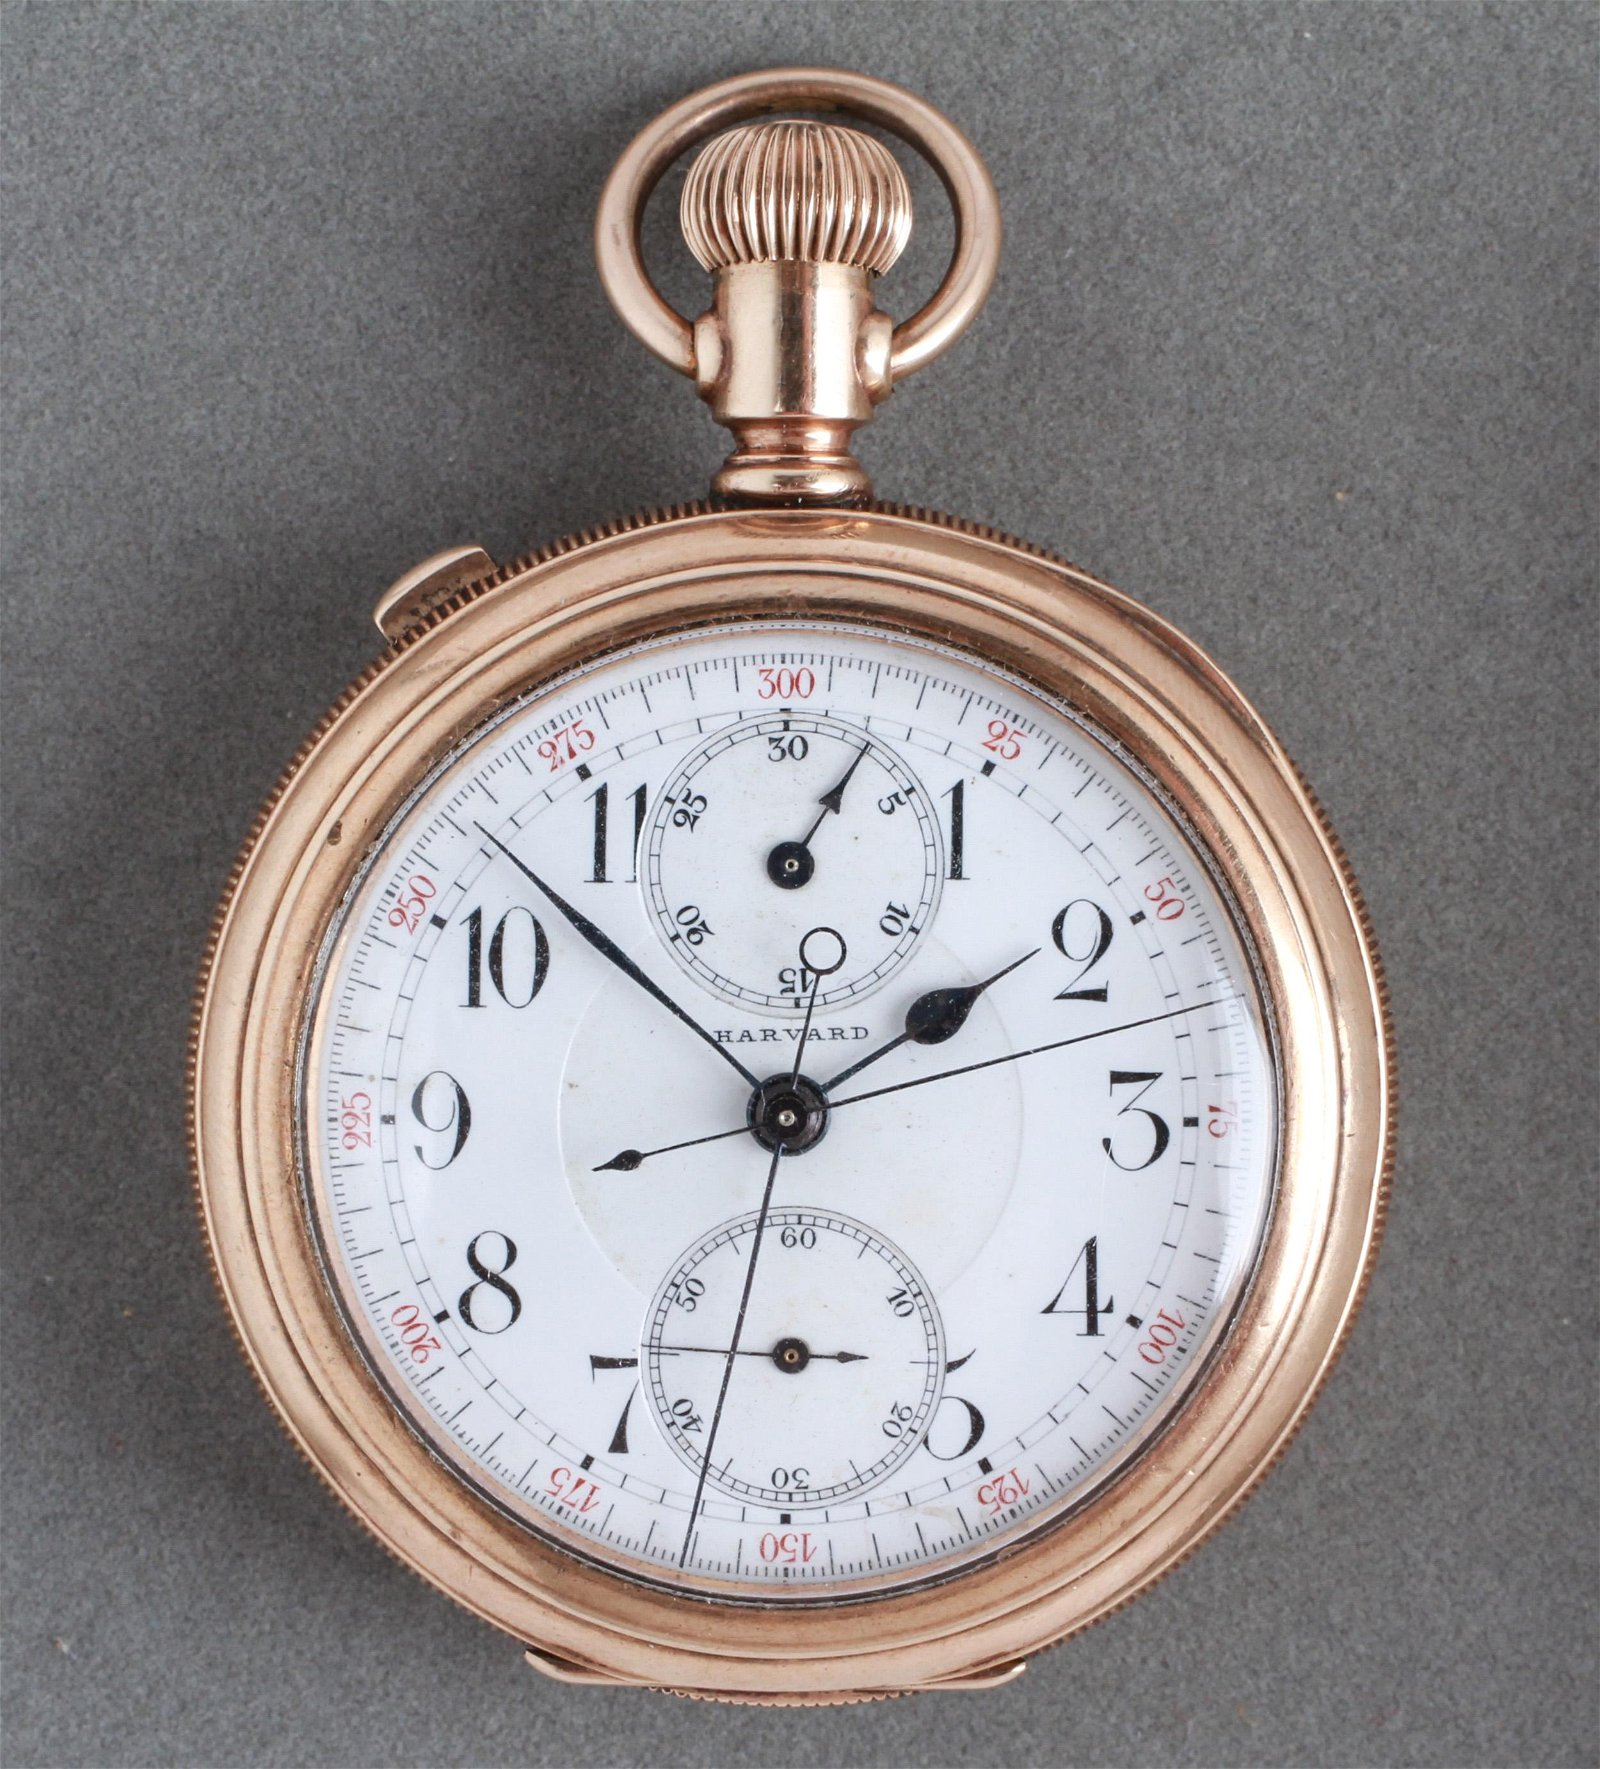 GF Split-Second Harvard Chronograph Pocket Watch